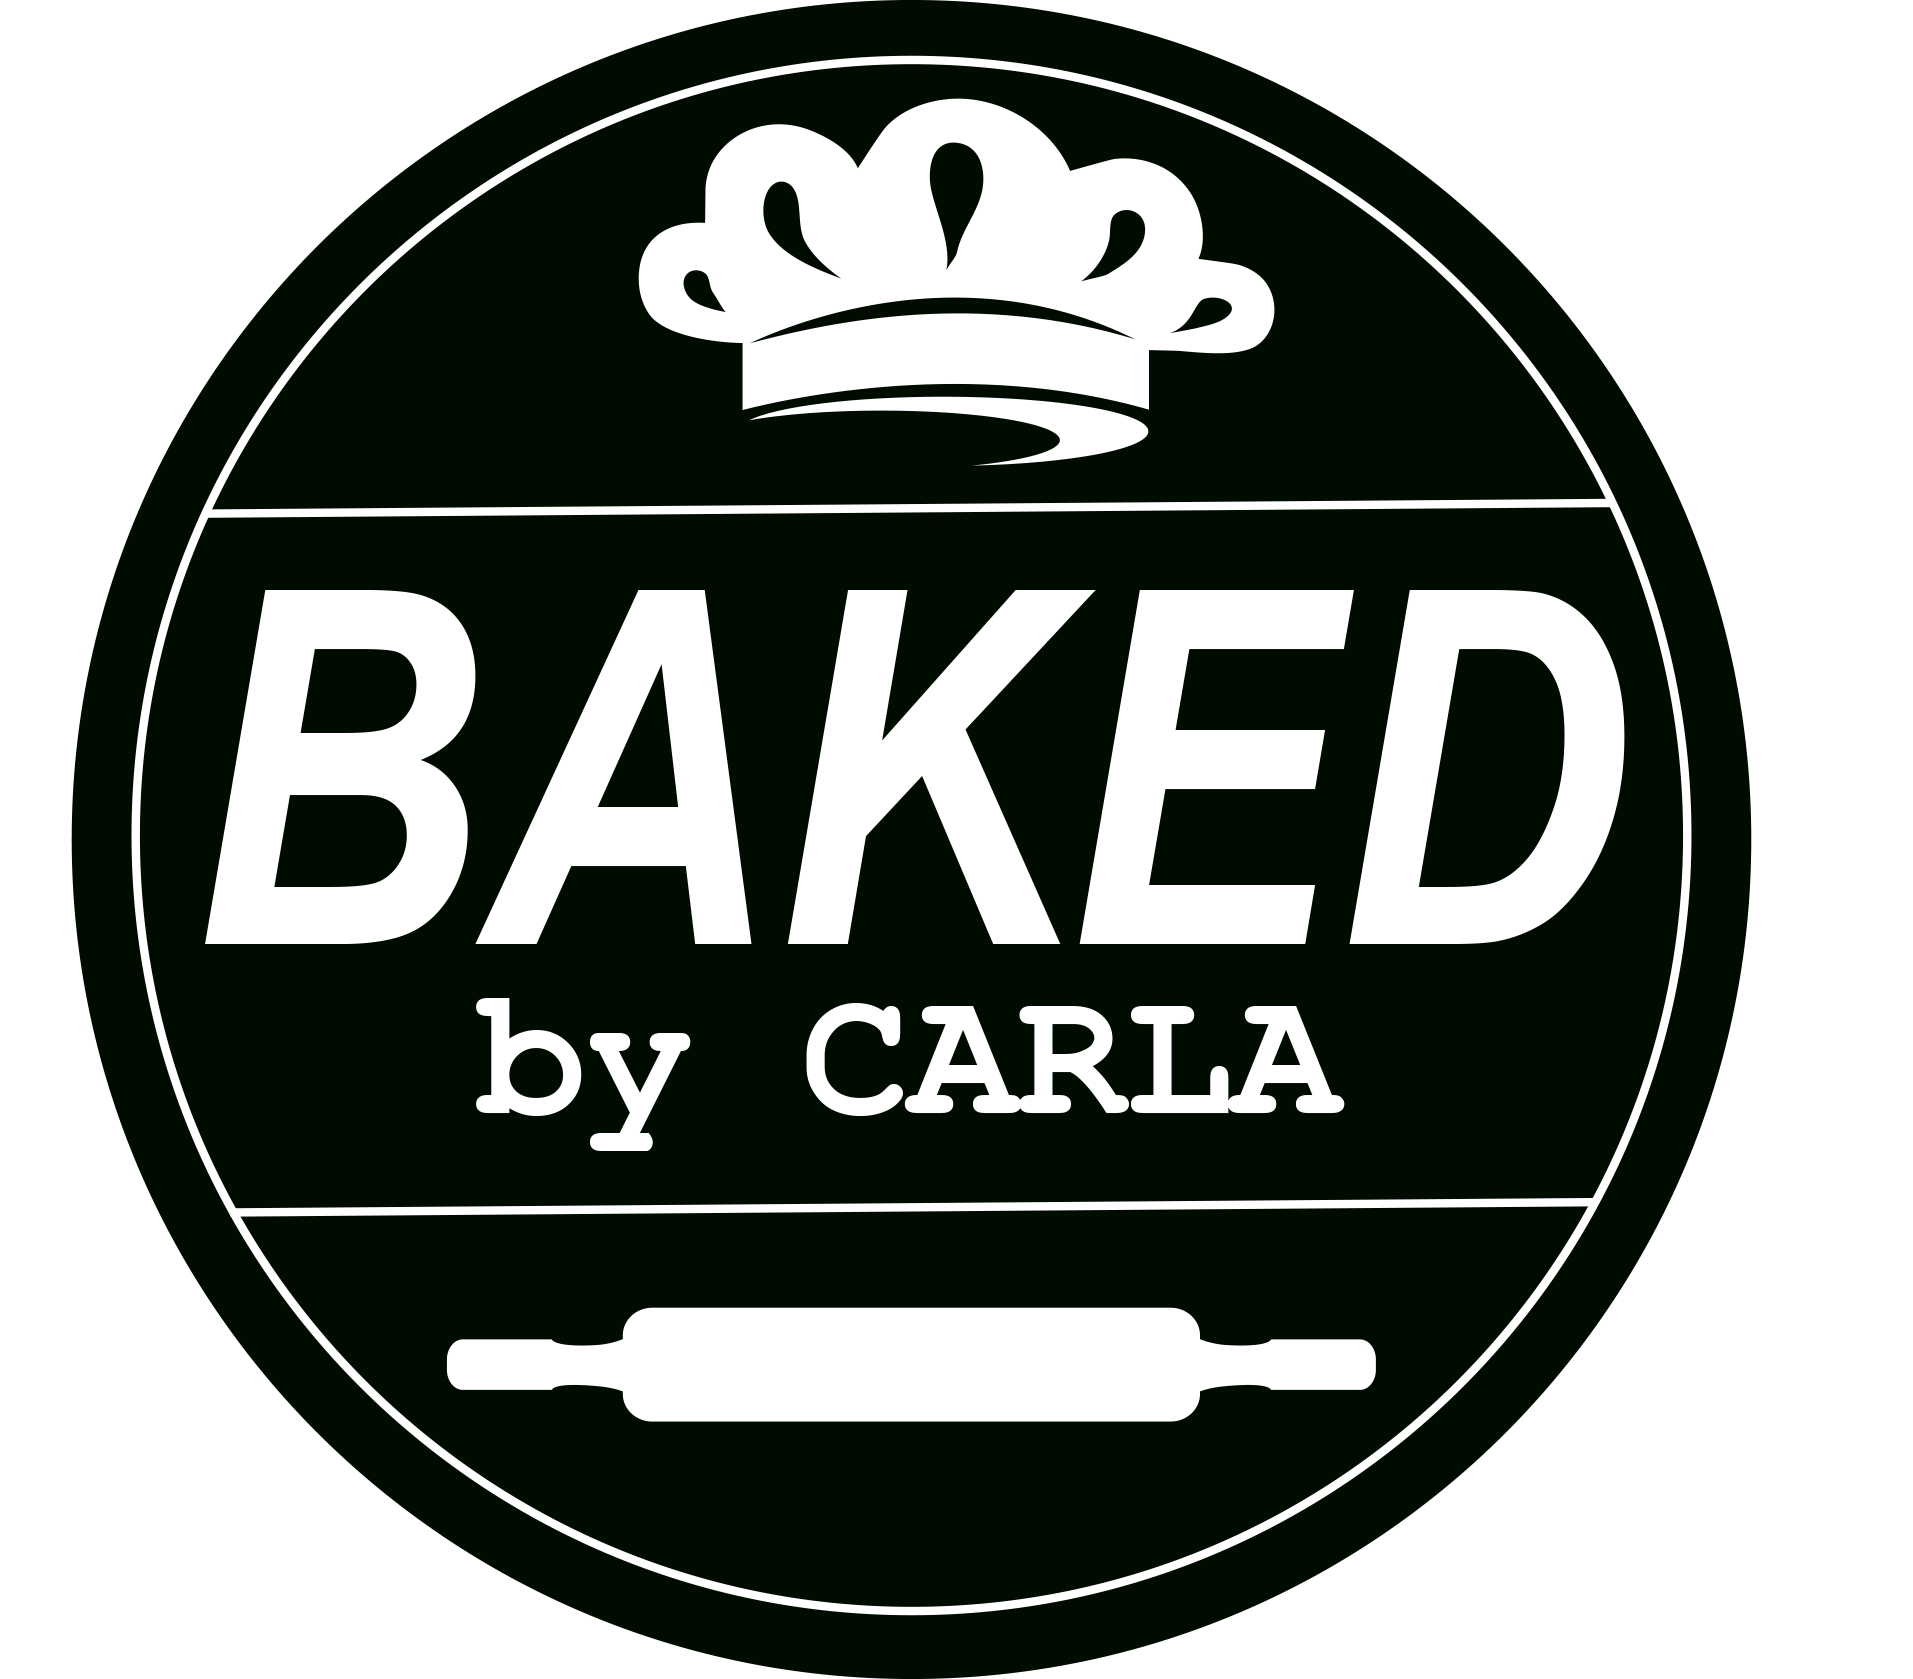 Baked by Carla